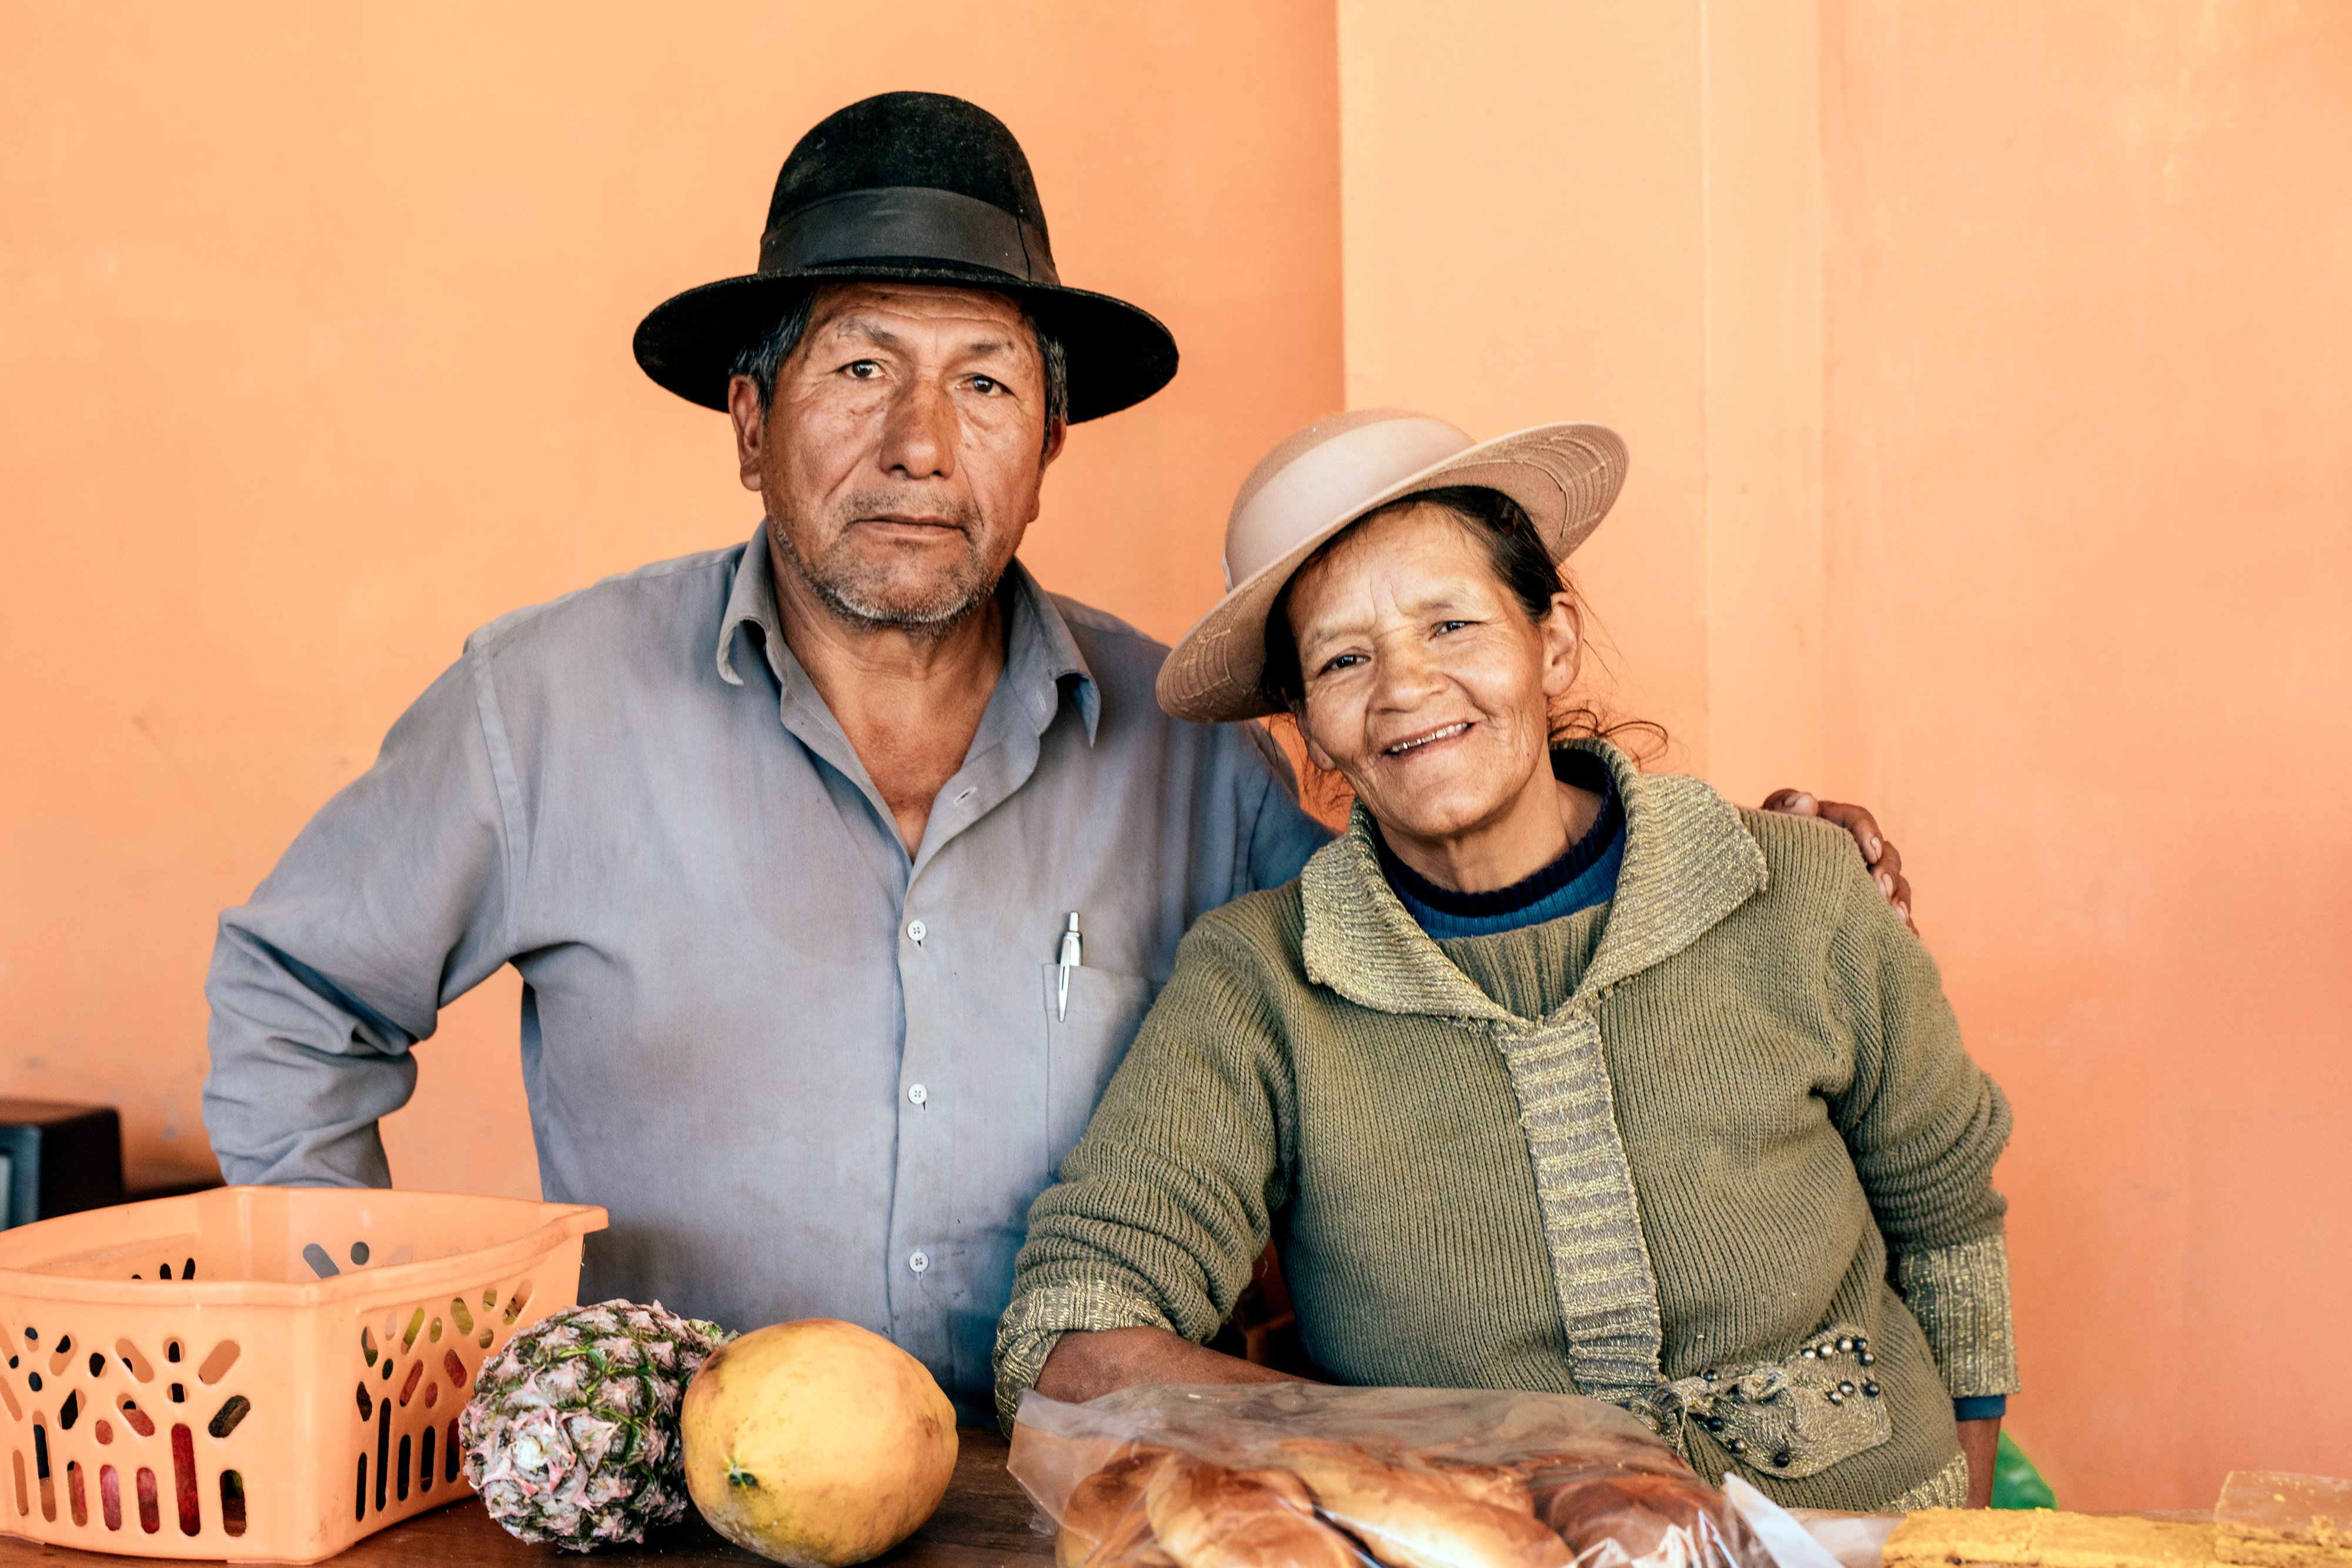 Peru couple on orange background